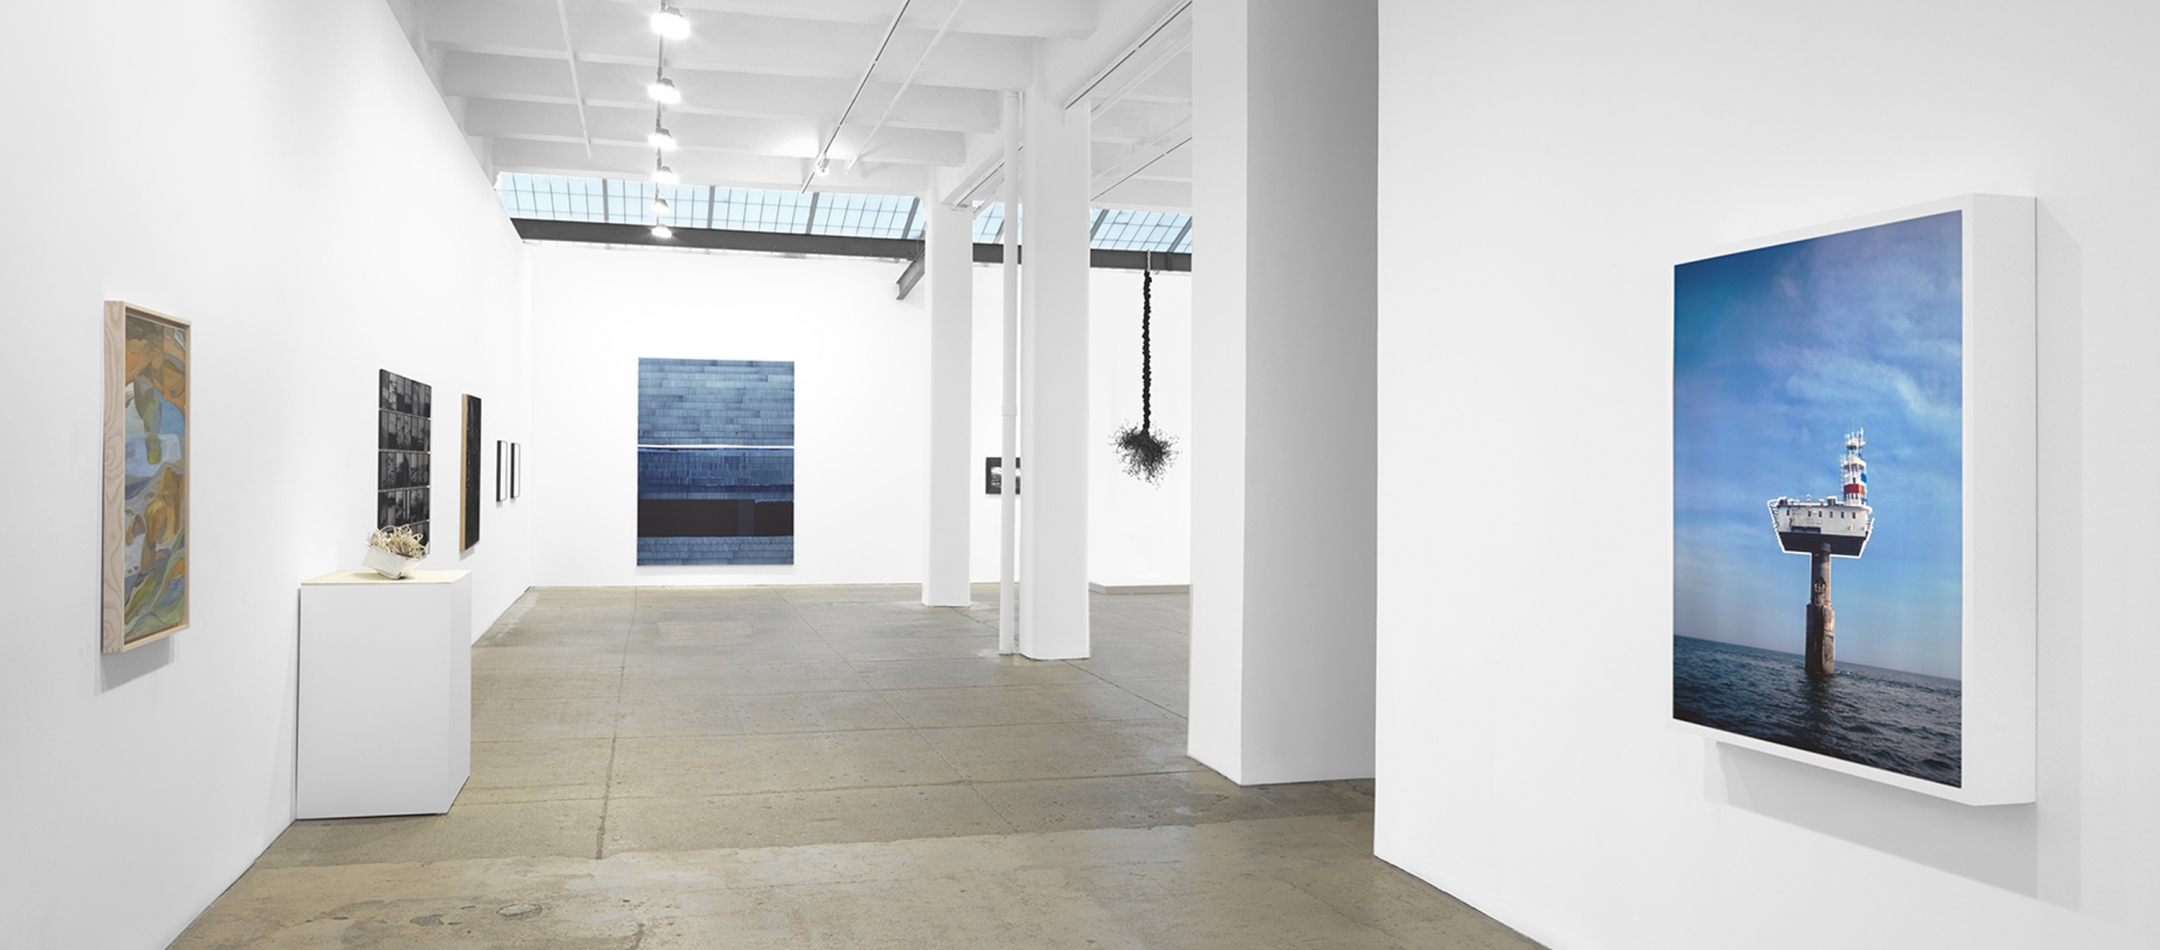 Installation view at Galerie Lelong in New York